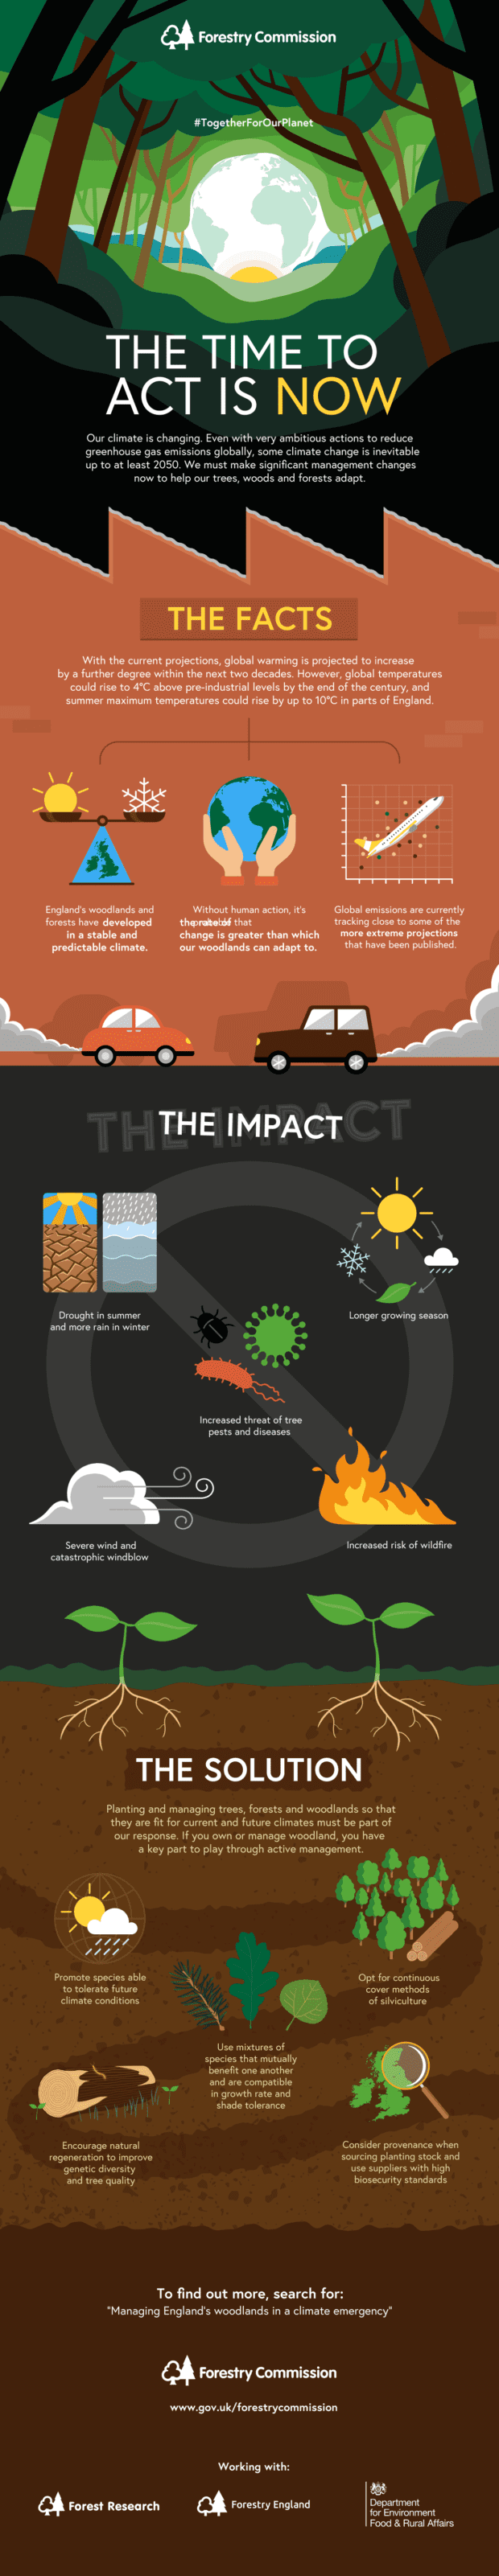 Infographic depicting the facts around climate change, the impact on our planet and what we can do to help. Text from top to bottom: THE TIME TO ACT IS NOW Our climate is changing. Even with very ambitious actions to reduce greenhouse gas emissions globally, some climate change is inevitable up to at least 2050. We must make significant management changes now to help our trees, woods and forests adapt. THE FACTS With the current projections, global warming is projected to increase by a further degree within the next two decades. However, global temperatures could rise to 4°C above pre-industrial levels by the end of the century, and summer maximum temperatures could rise by up to 10°C in parts of England. England's woodlands and forests have developed in a stable and predictable climate. (Under image of scales with a map of UK undernath wighing sun and snow) Without human action, it's probable that the rate of change is greater than which our woodlands can adapt to. (underneath an image of the world being held in two hands) Global emissions are currently tracking close to some of the more extreme projections that have been published. (underneath an image of a graph showing a plane pointing diagonally up to the right). THE IMPACT Drought in summer and more rain in winter (under two graphics, the left one showing sun over dry ground and the right one rain over grey water) Longer growing season (under a graphic of a cycle showing clockwise; sun to rain cloud to leaf to snow) Increased threat of tree pests and diseases (underneath three graphics showing a disease molecule a caterpillar and a beetle) Severe wind and catastrophic windblow (under a graphic showing a large cloud blowing wind) Increased risk of wildfire (underneath a graphic showing fire) THE SOLUTION Planting and managing trees, forests and woodlands so that they are fit for current and future climates must be part of our response. If you own or manage woodland, you have a key part to play through active ma